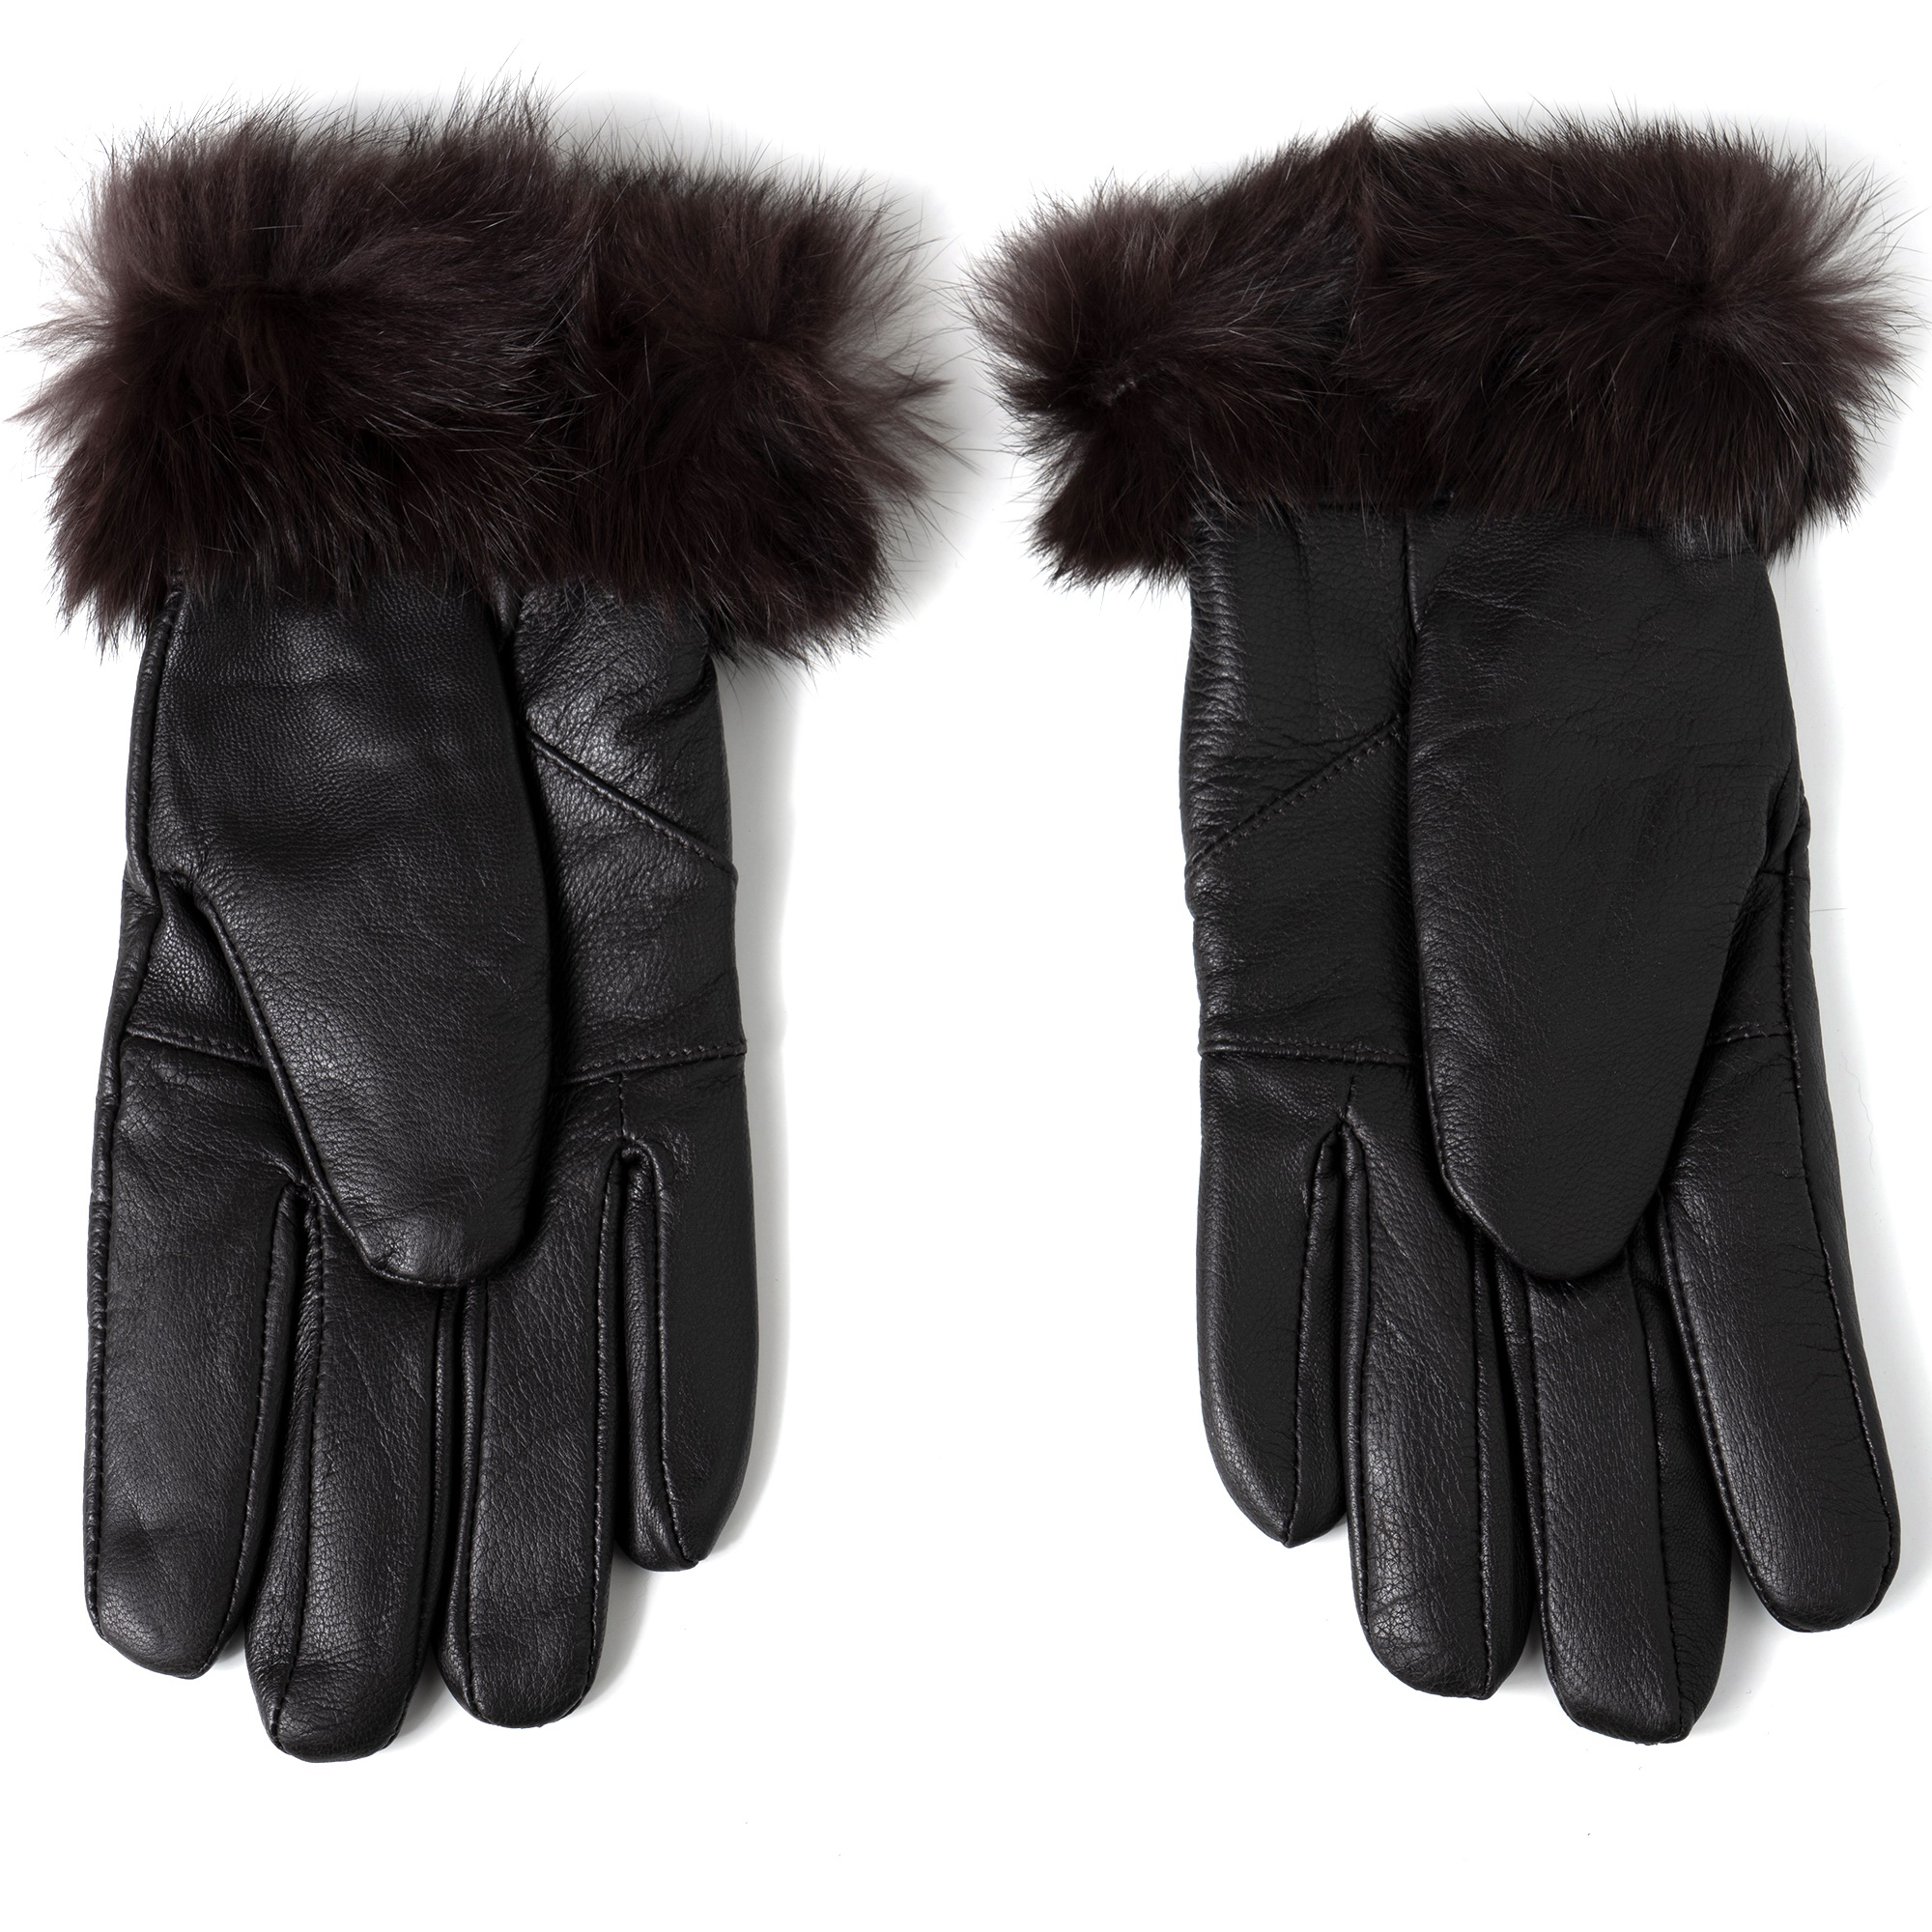 Alpine-Swiss-Womens-Dressy-Gloves-Genuine-Leather-Thermal-Lining-Fur-Trim-Cuff thumbnail 25